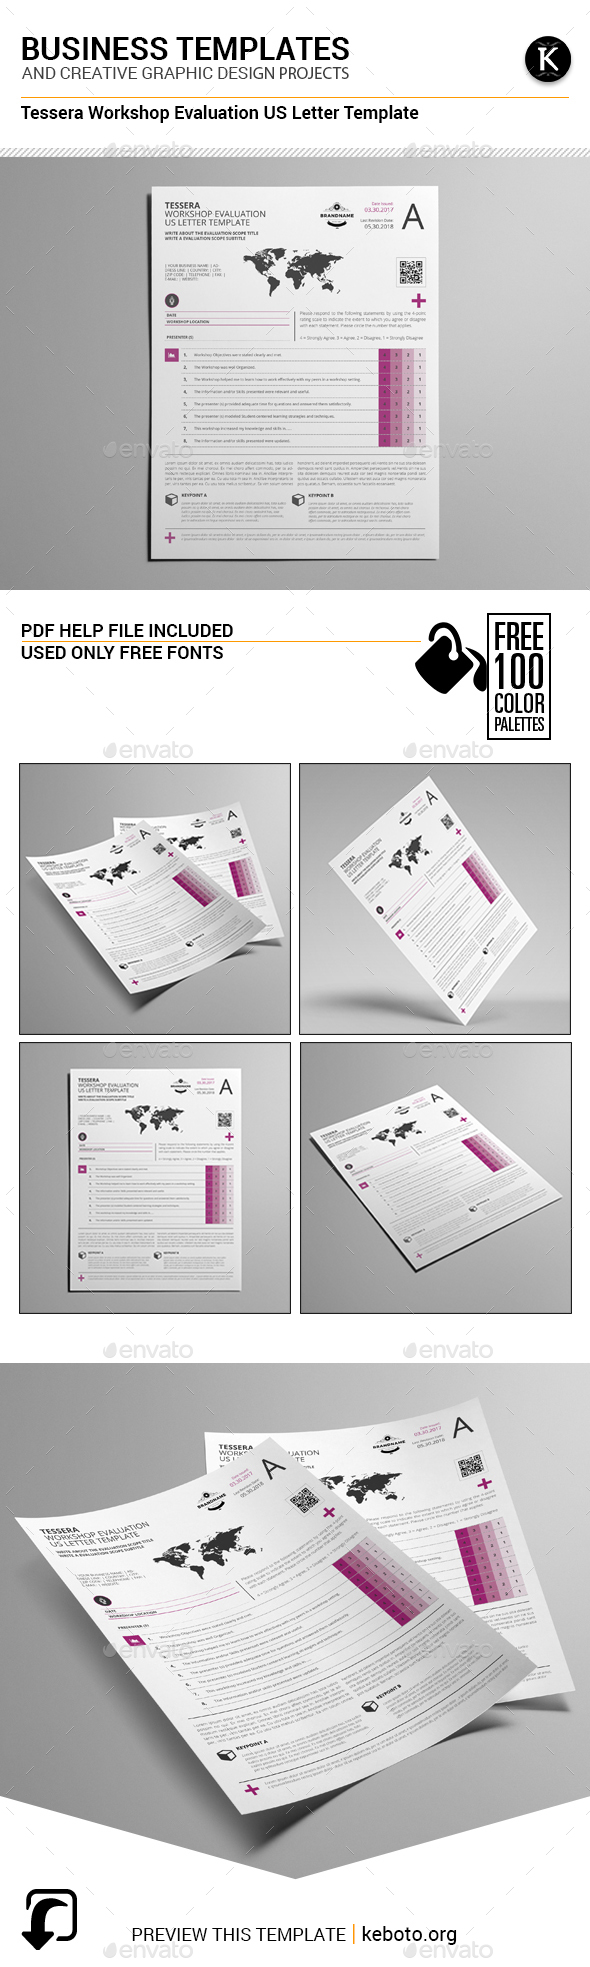 Tessera Workshop Evaluation US Letter Template - Miscellaneous Print Templates